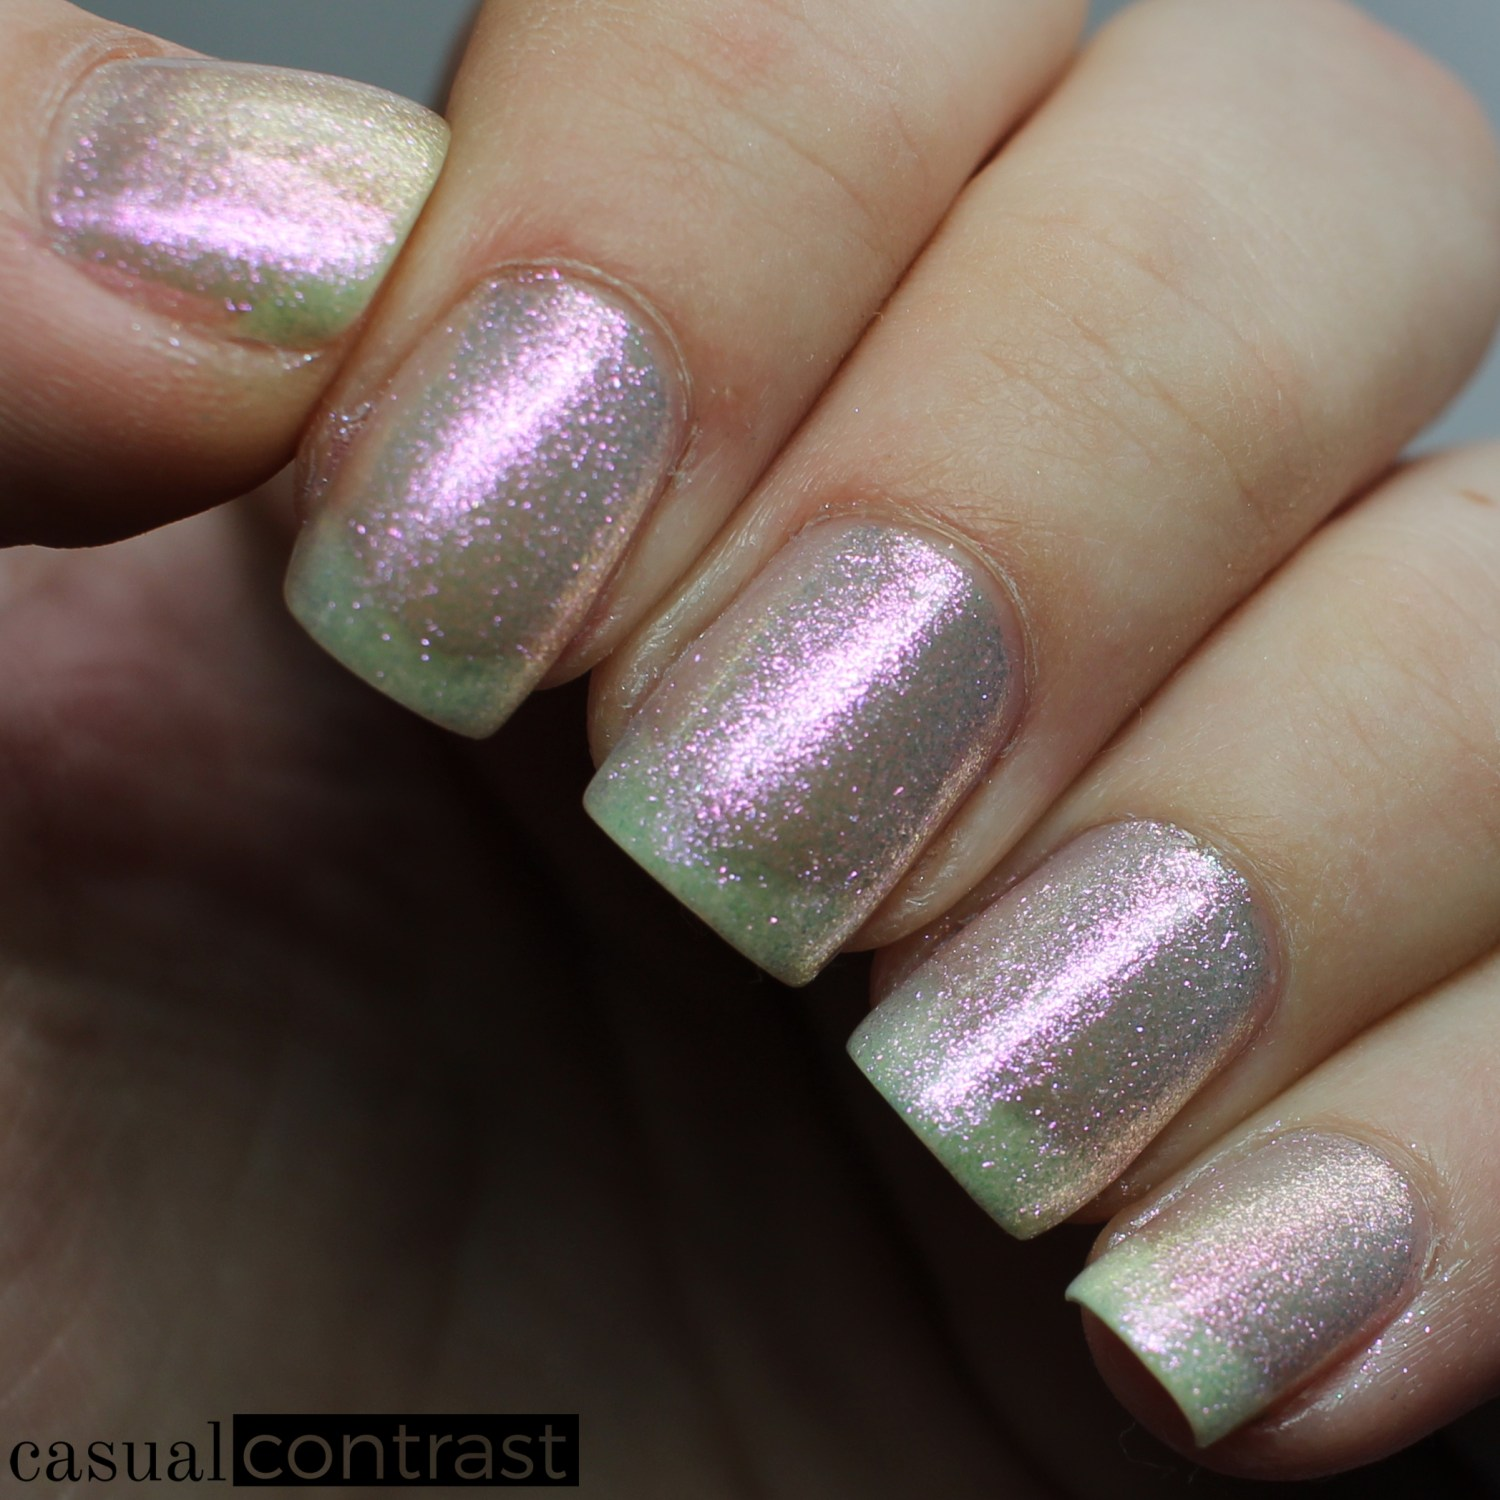 Image of Swatch of Zoya Leia from the Zoya Petals Collection